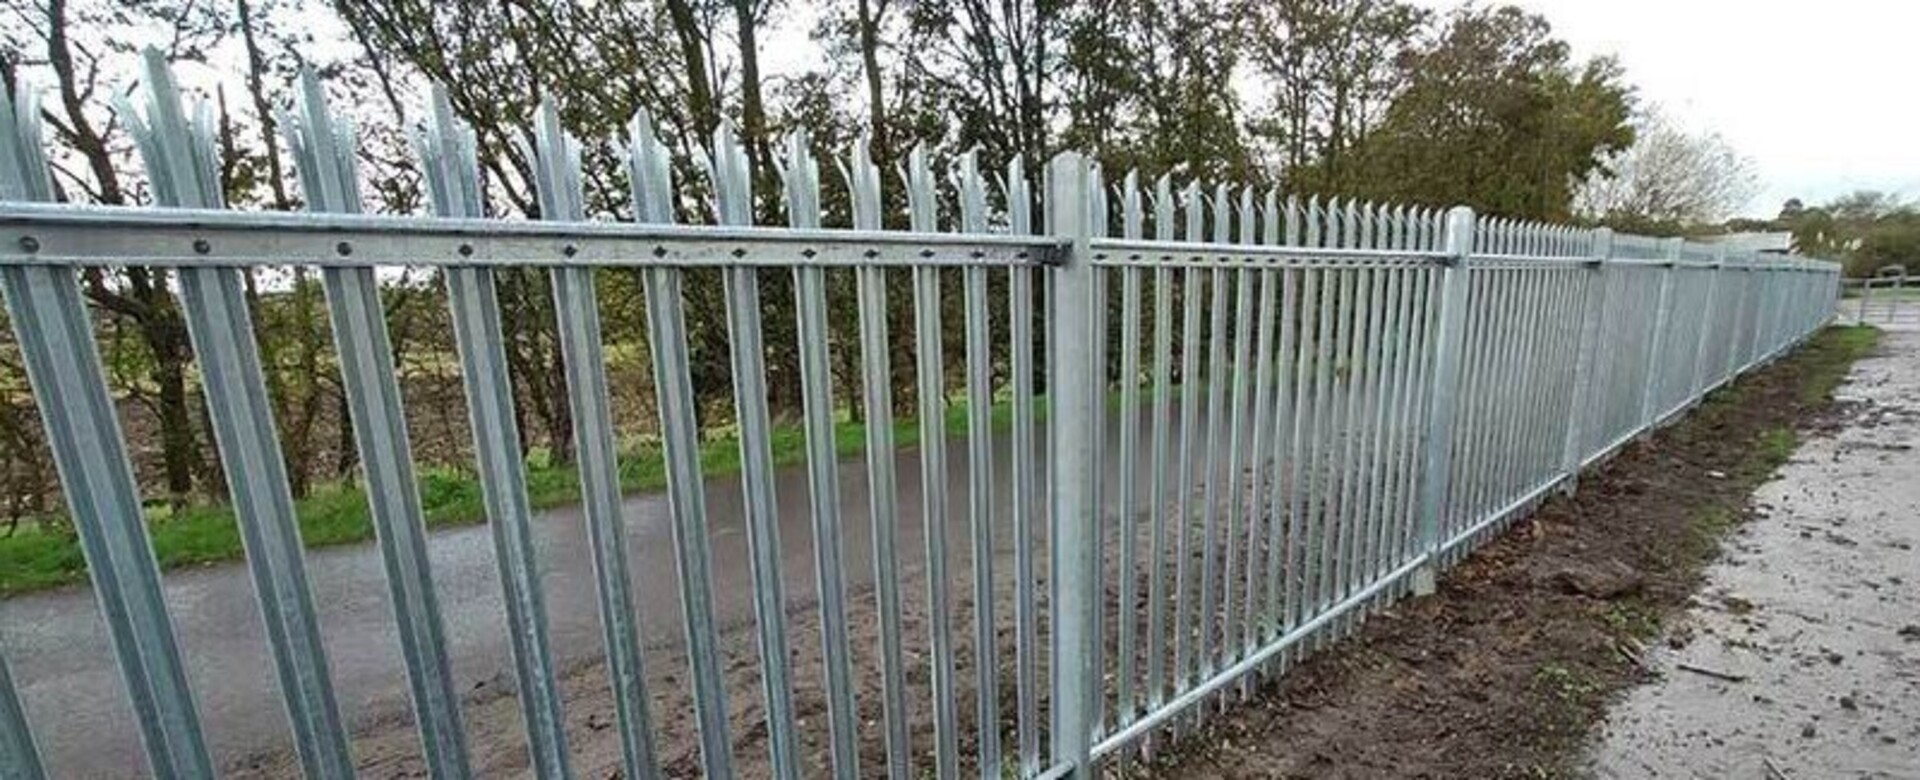 Fencing Installation Southend-on-Sea